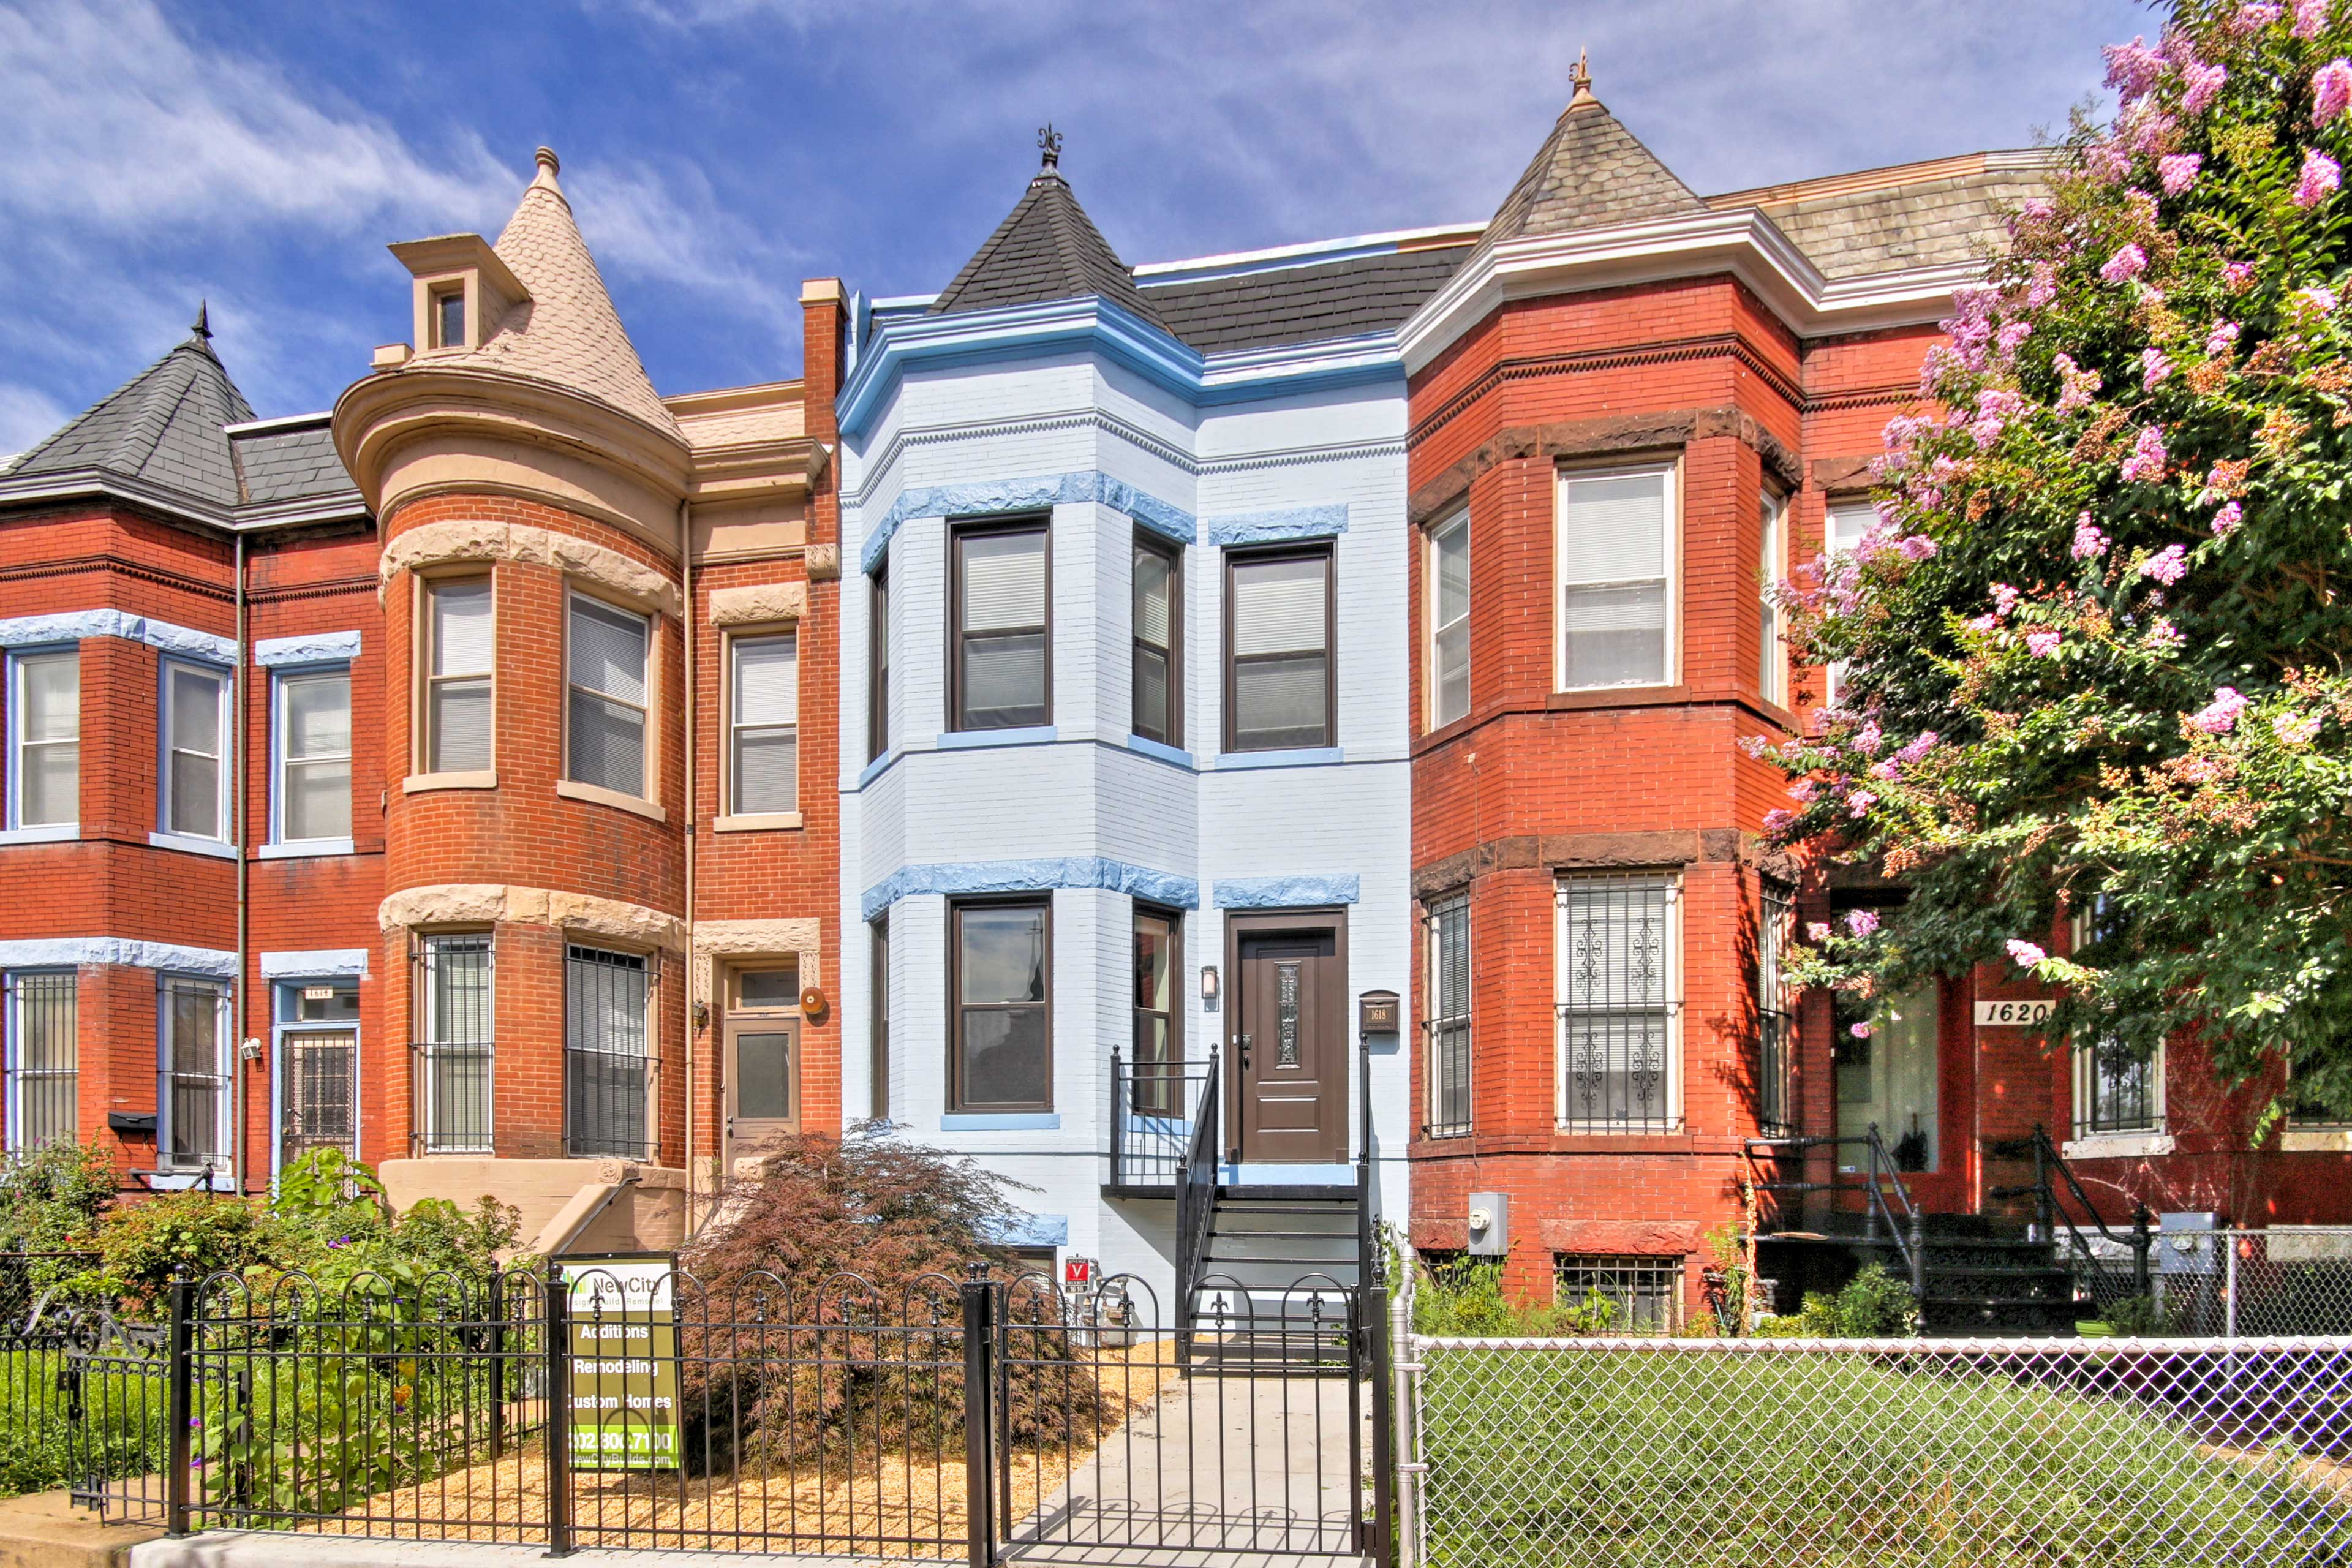 This lovely residence is the perfect place for your next D.C. rendezvous!